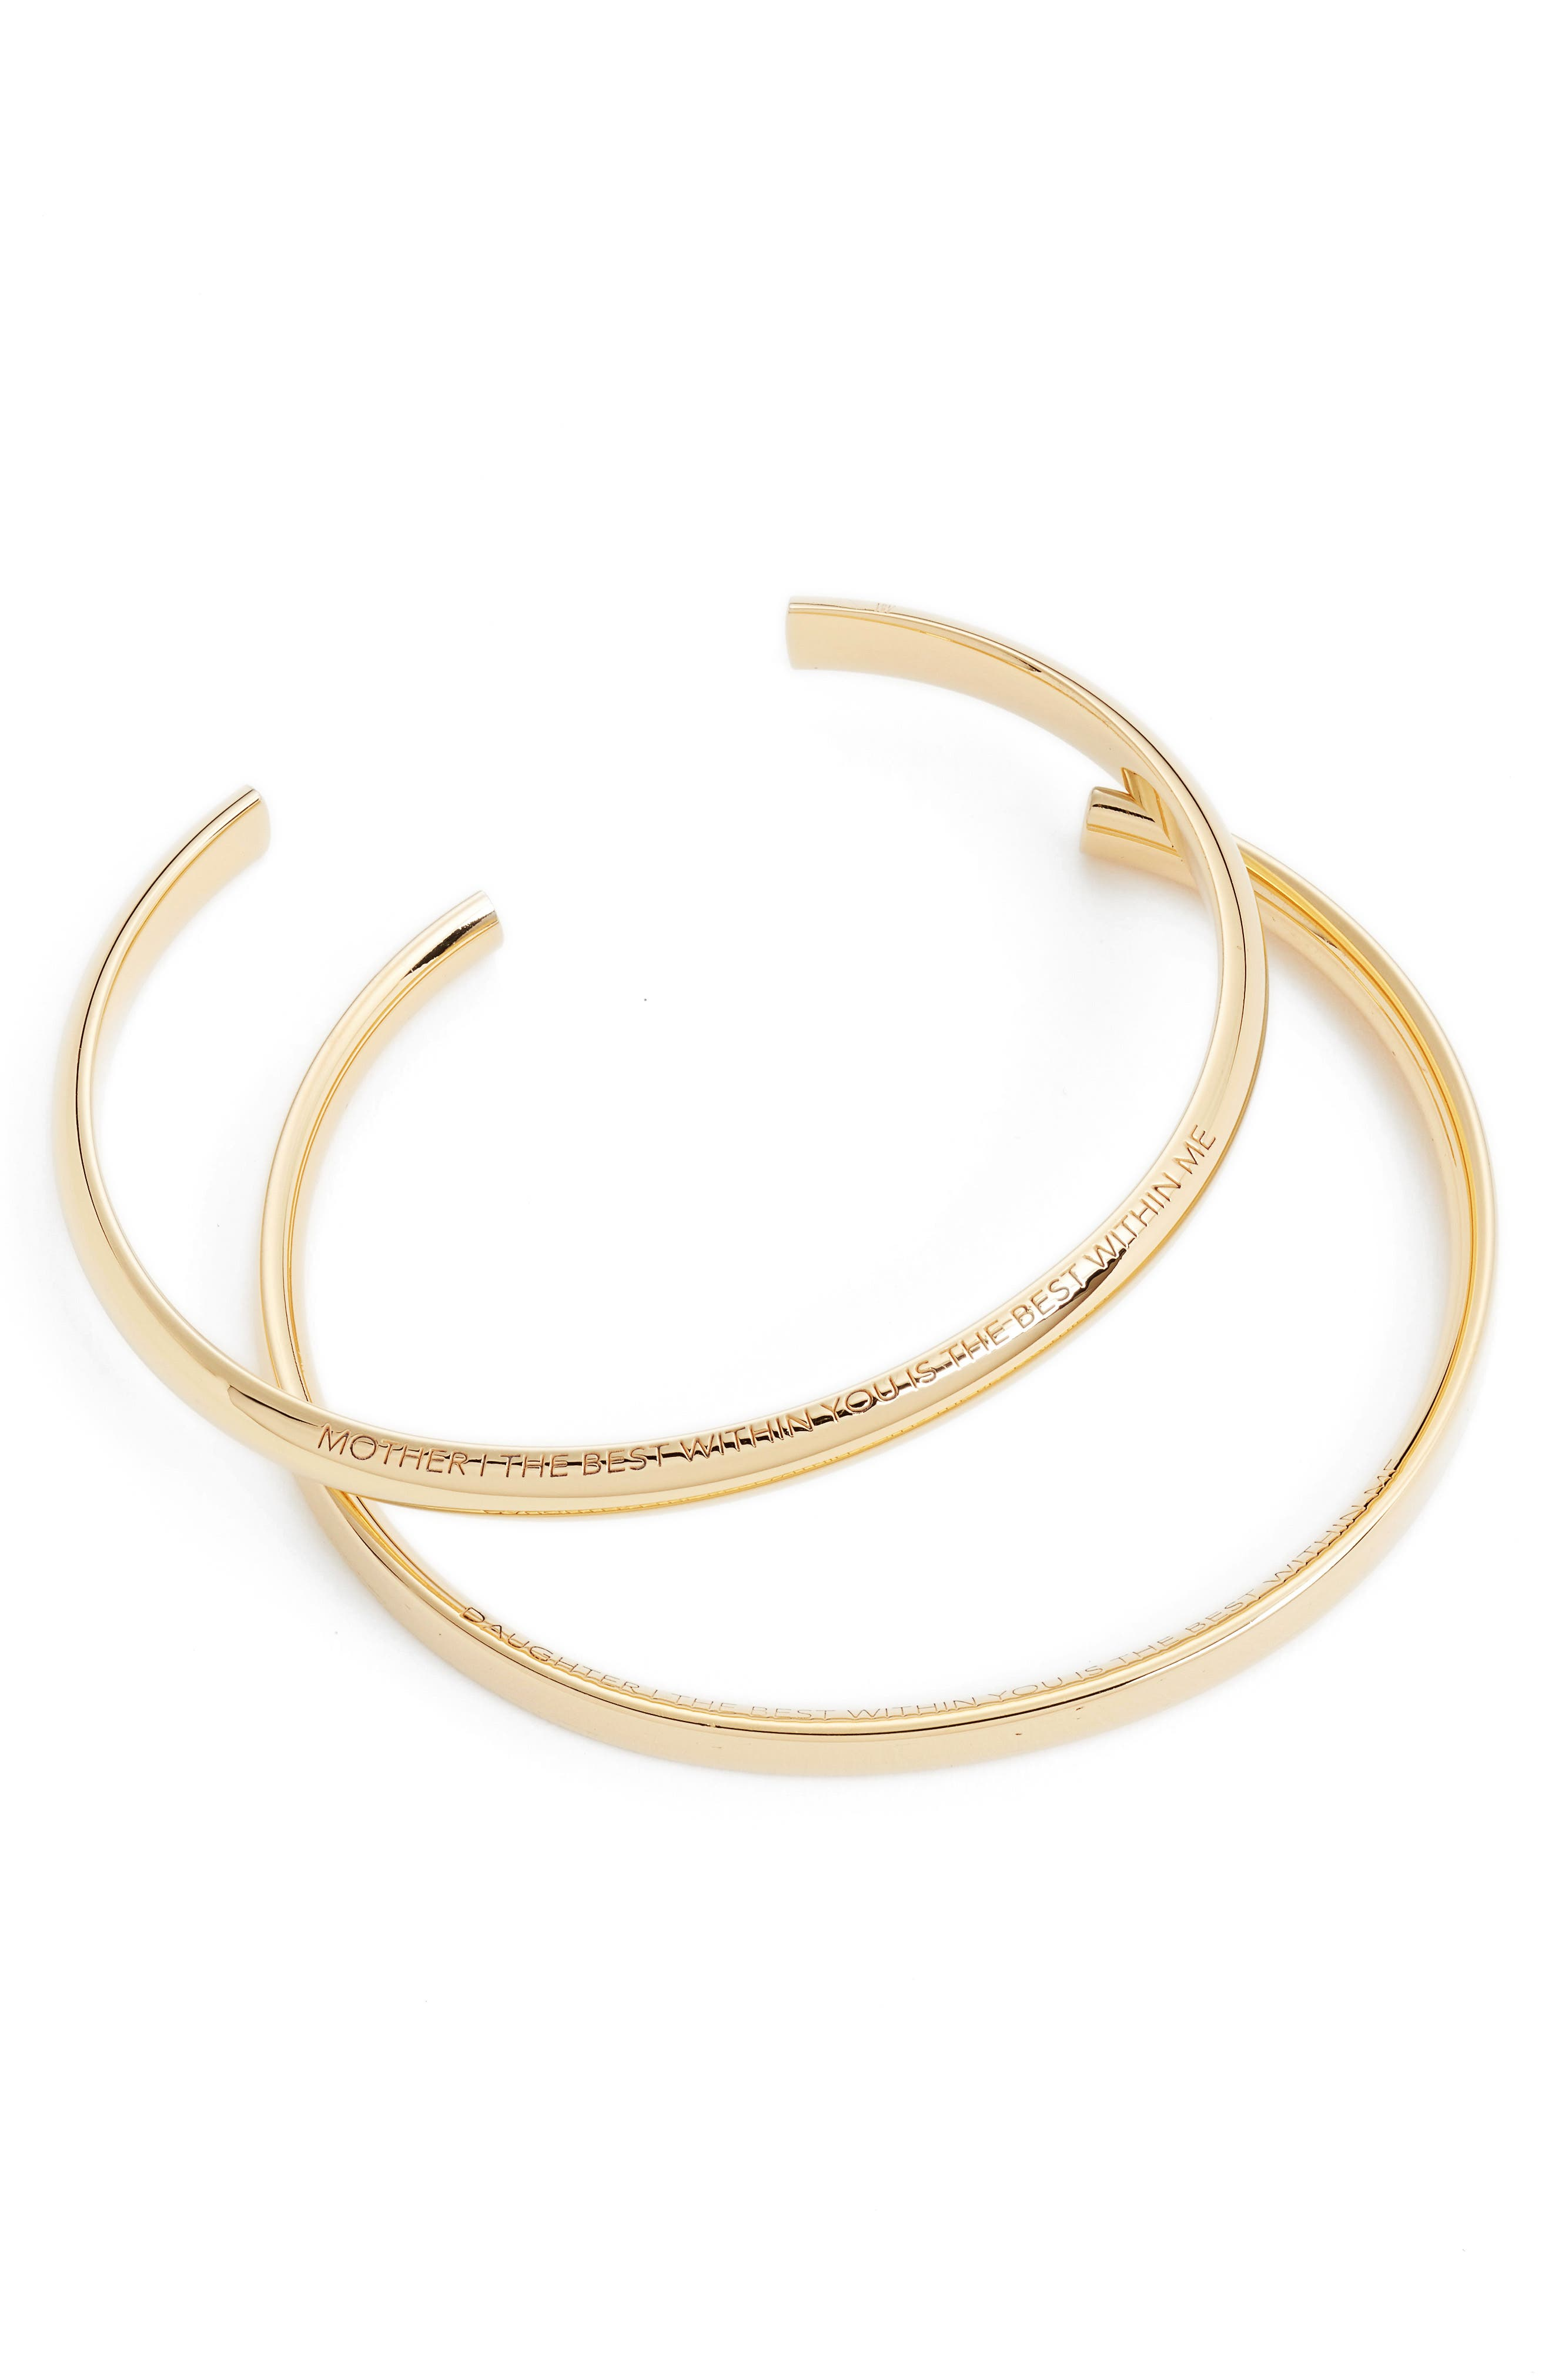 Main Image - Stella Valle Mother & Daughter Set of 2 Cuffs